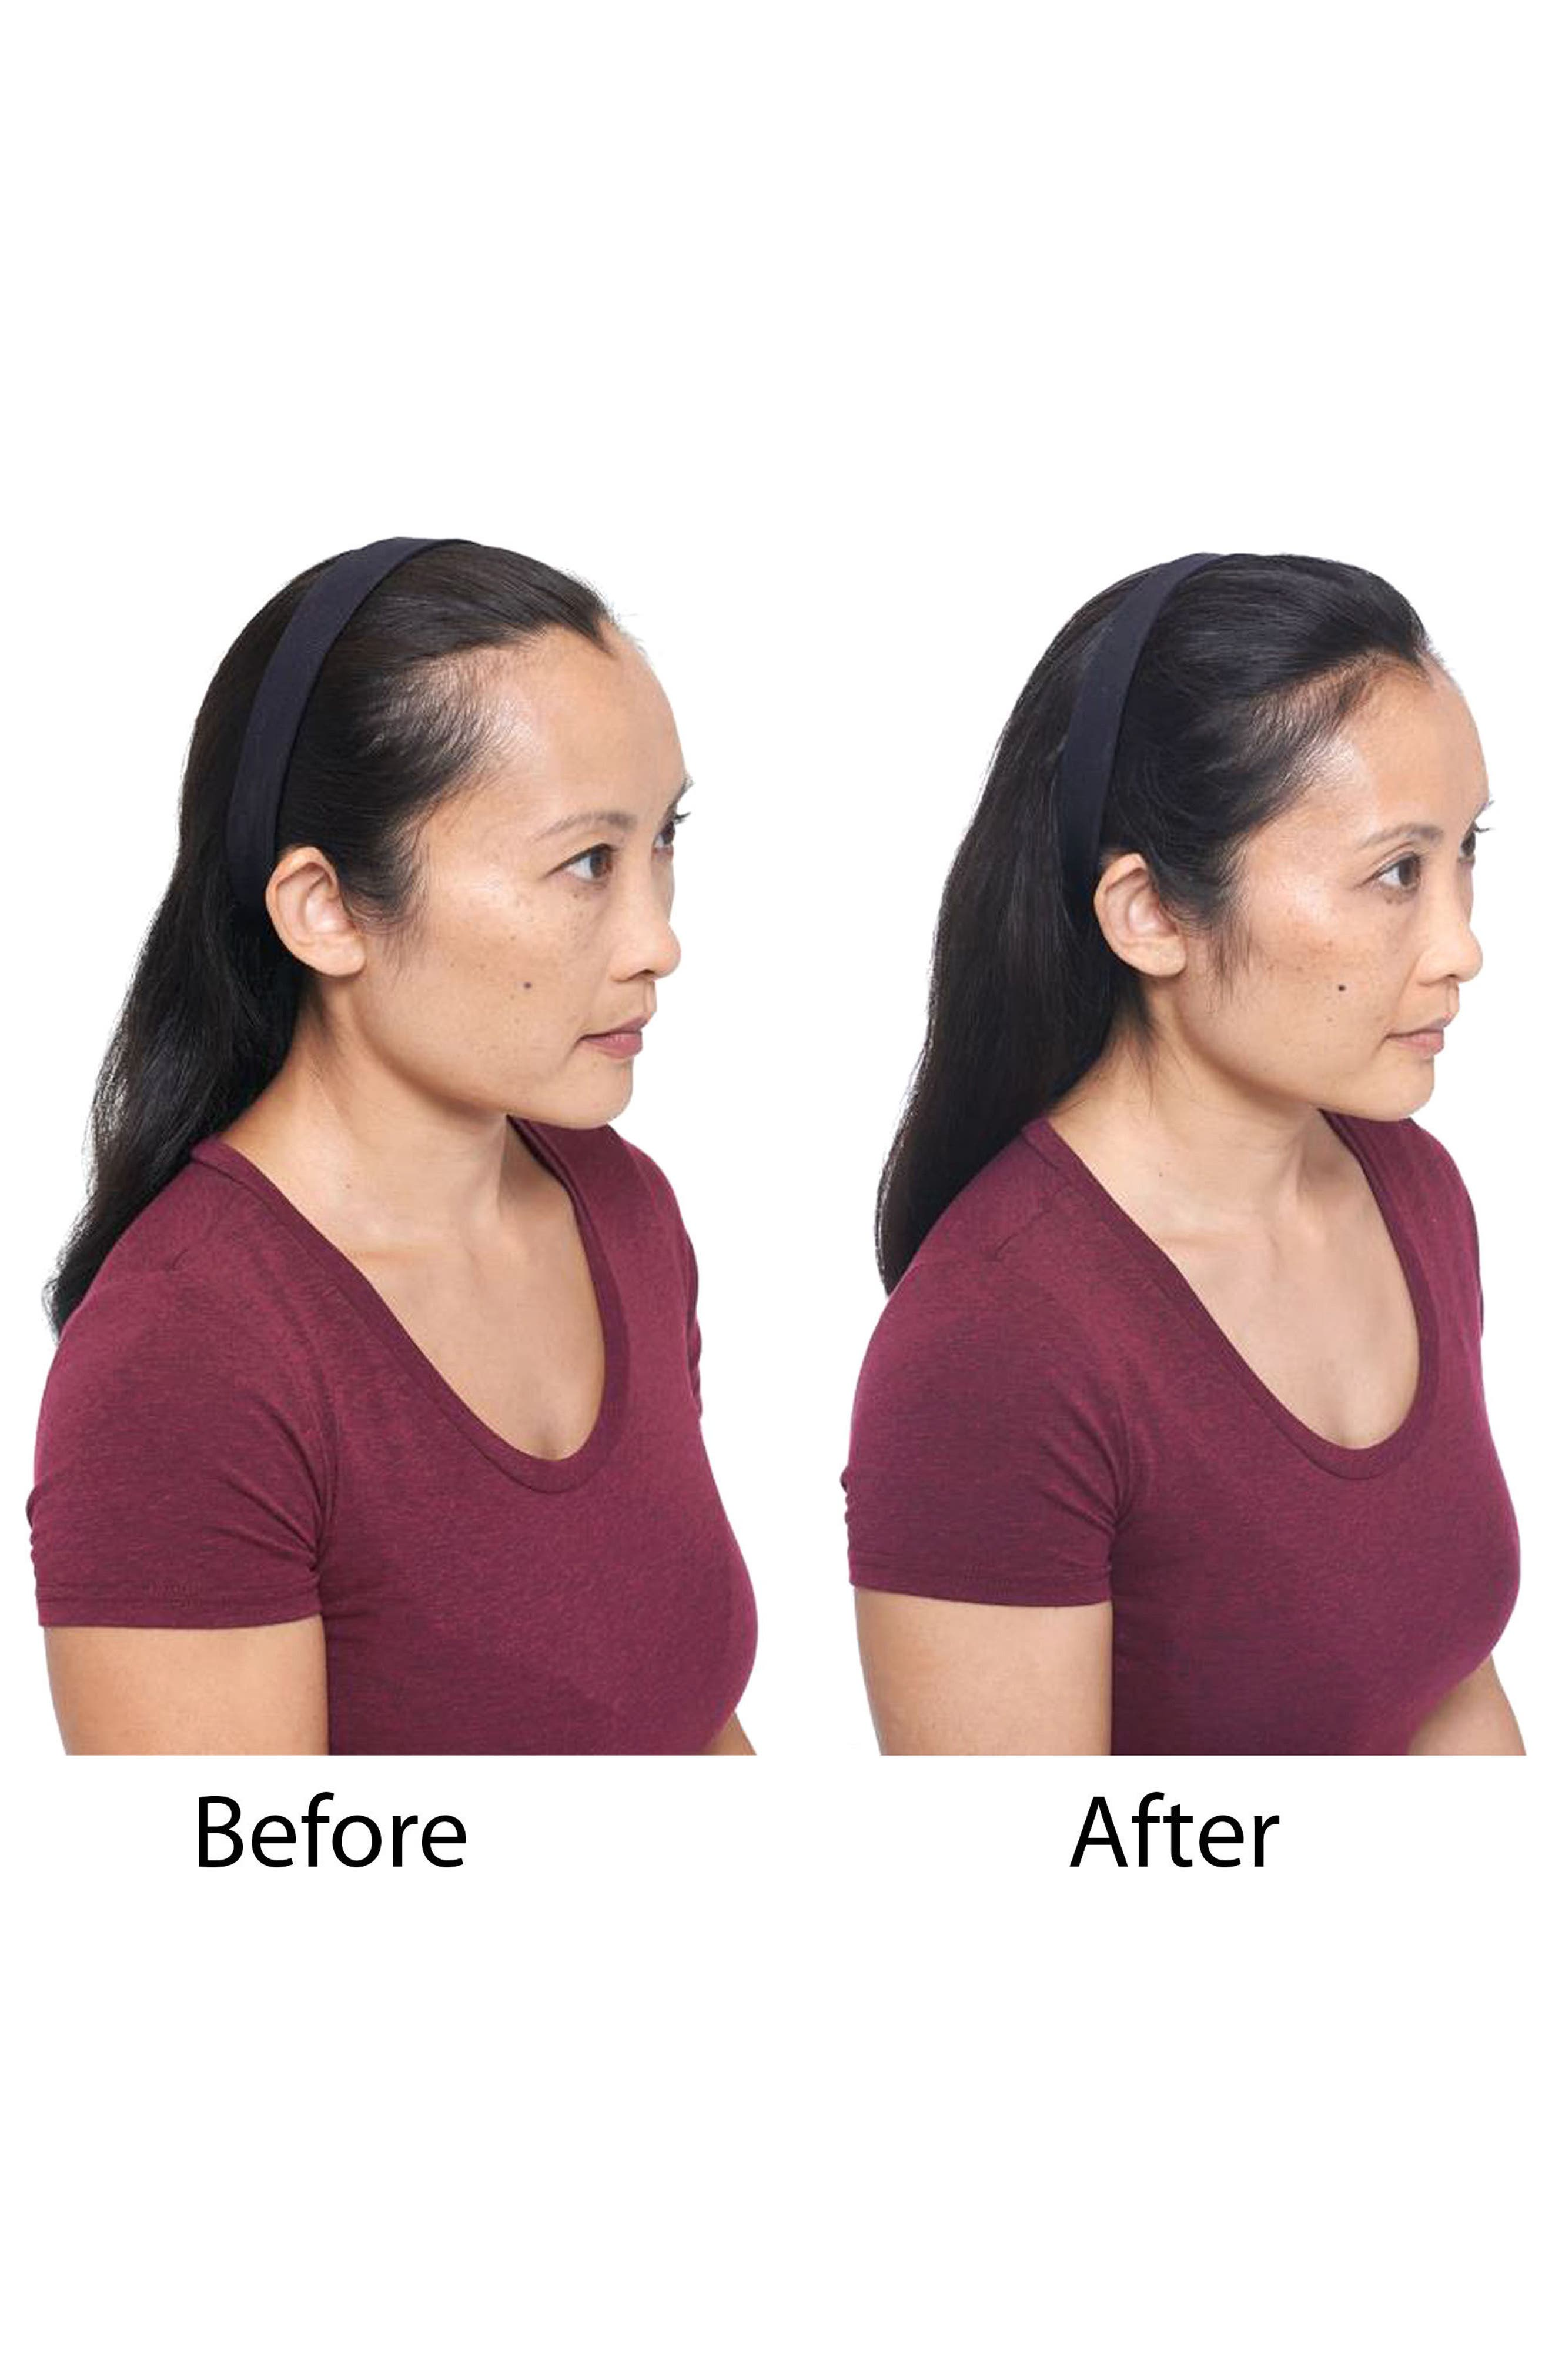 Hair Regrowth Treatment Spray for Women,                             Alternate thumbnail 5, color,                             No Color